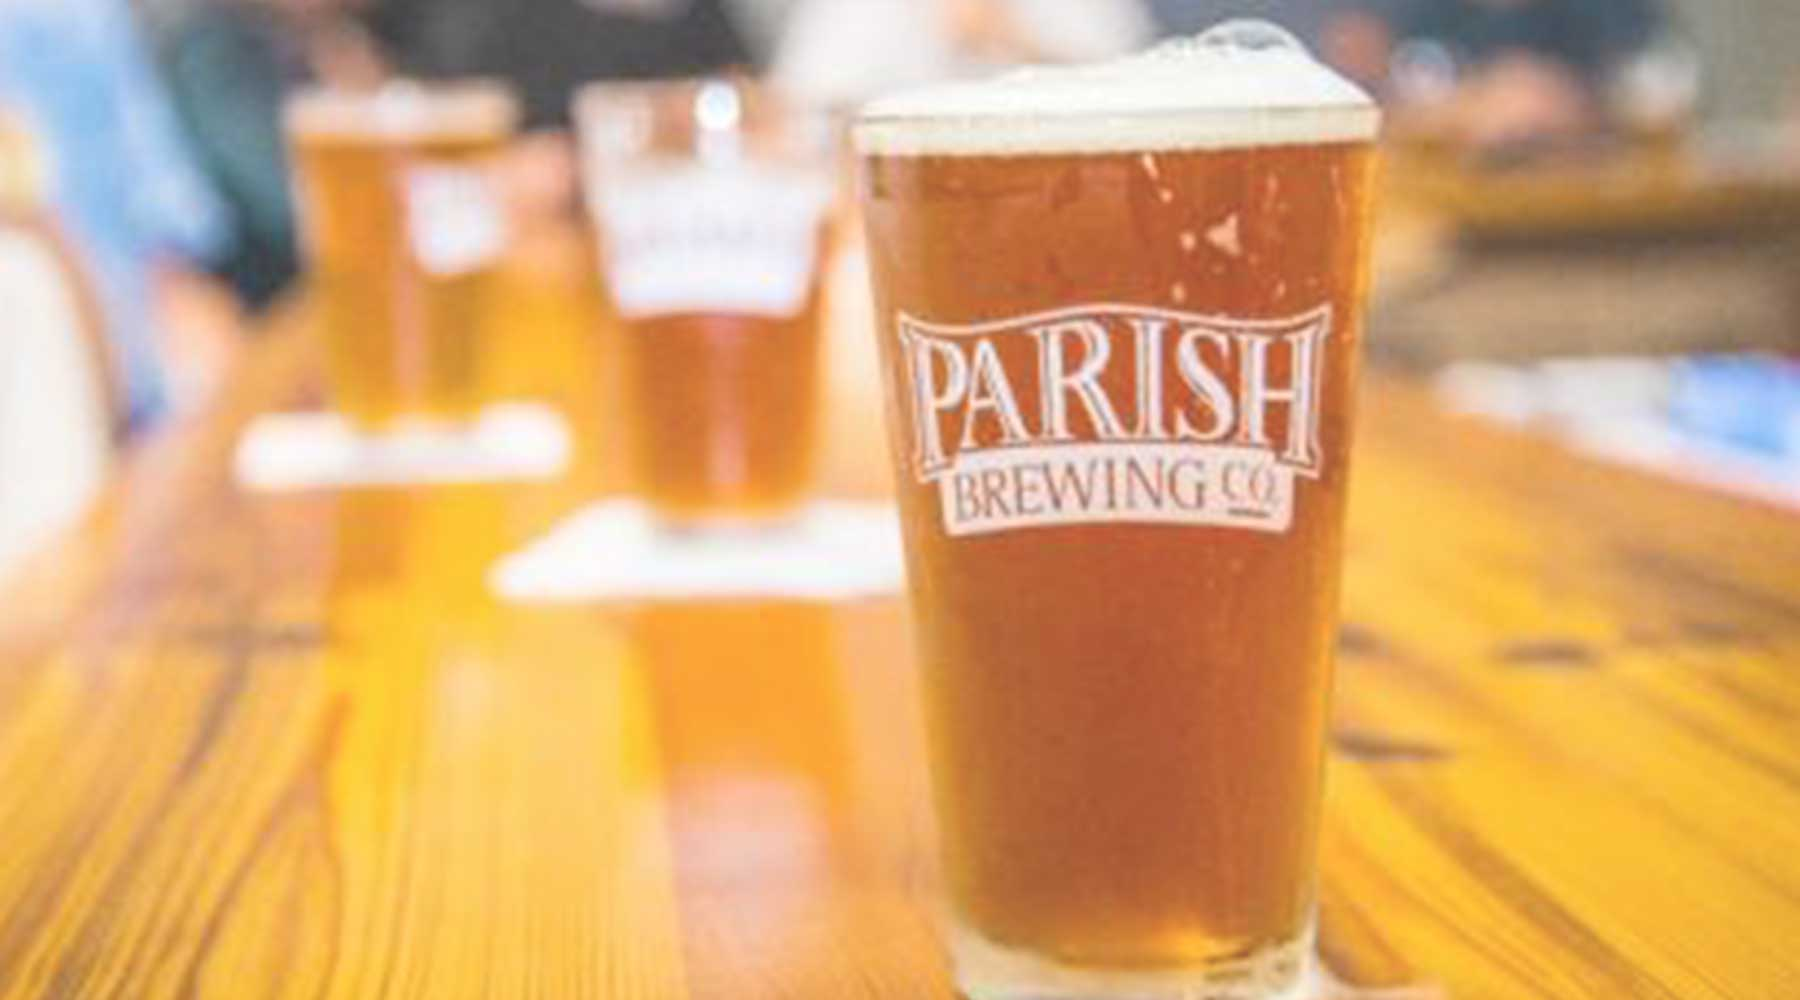 Parish Brewing Company | Just Wine